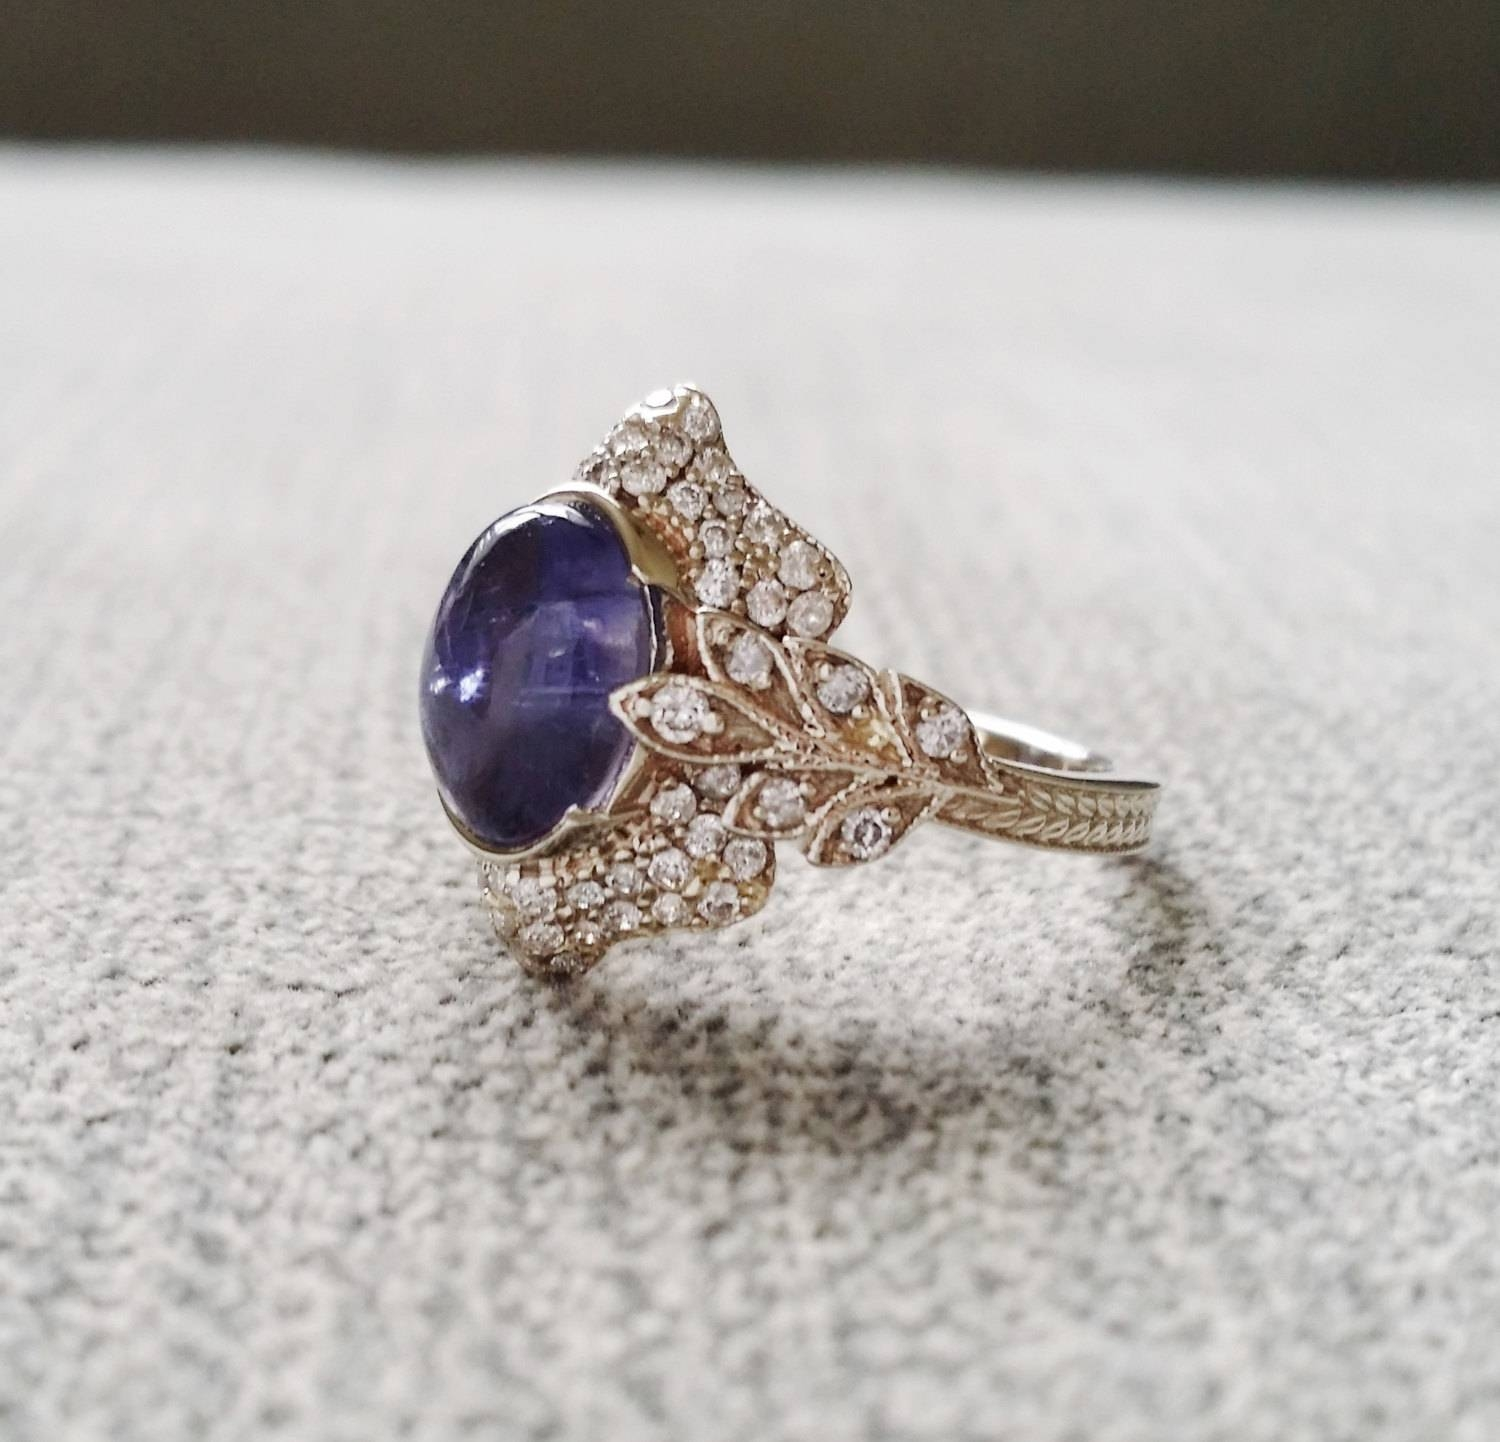 Antique Iolite Diamond Ring Gemstone Engagement Ring Violet Pertaining To Viking Engagement Rings (View 2 of 15)